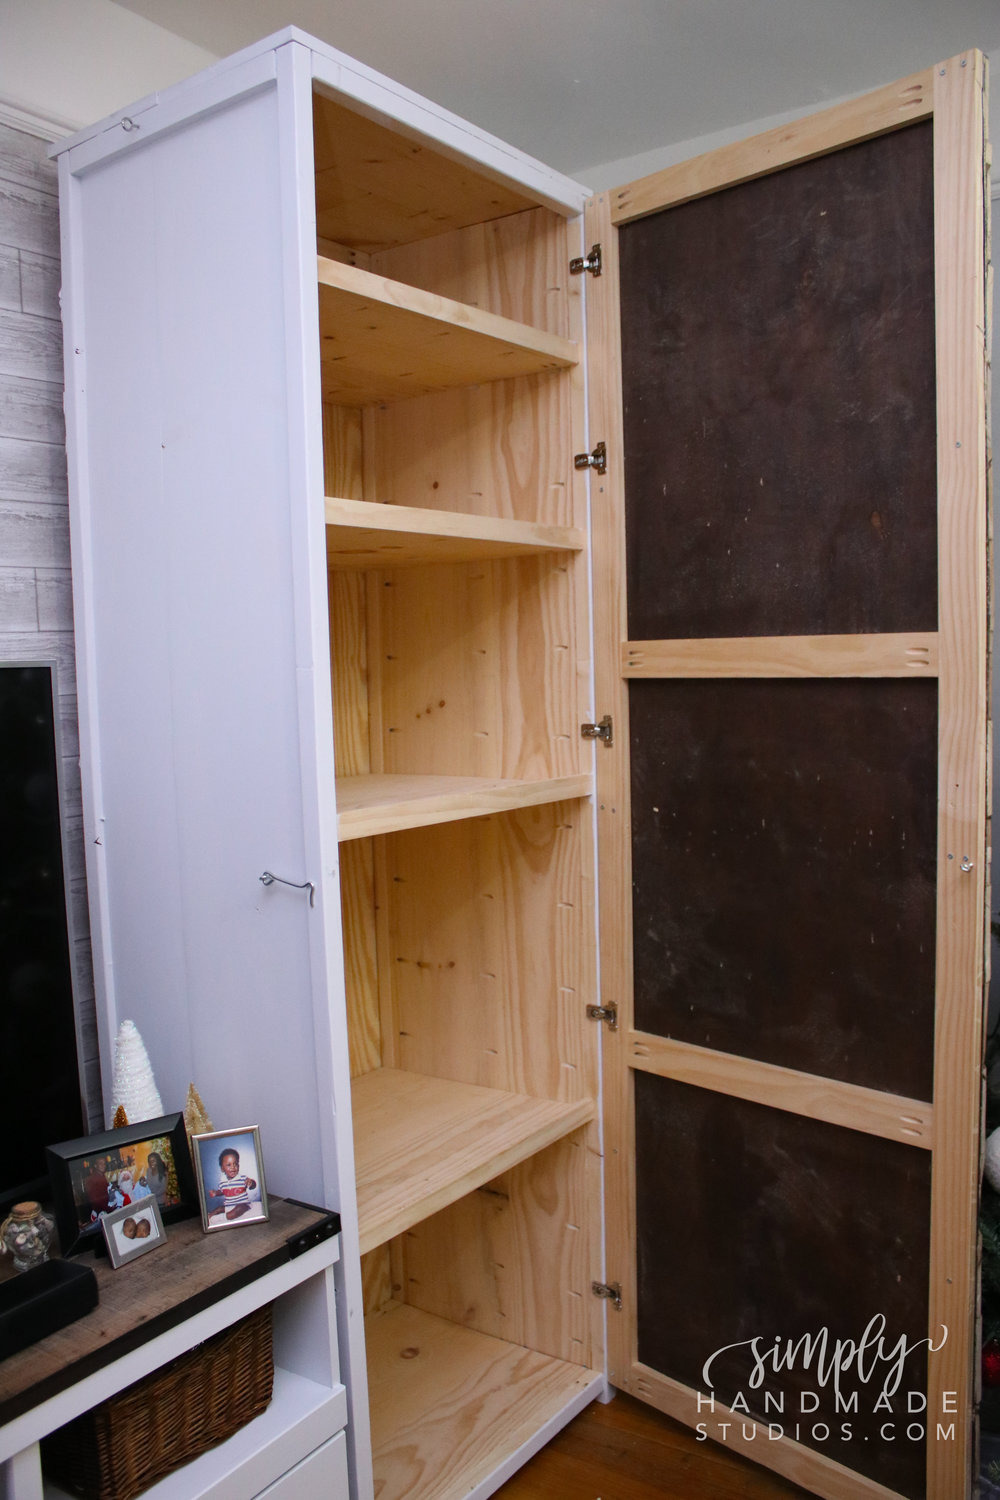 How to build a wood storage cabinet in 9 steps simply handmade studios